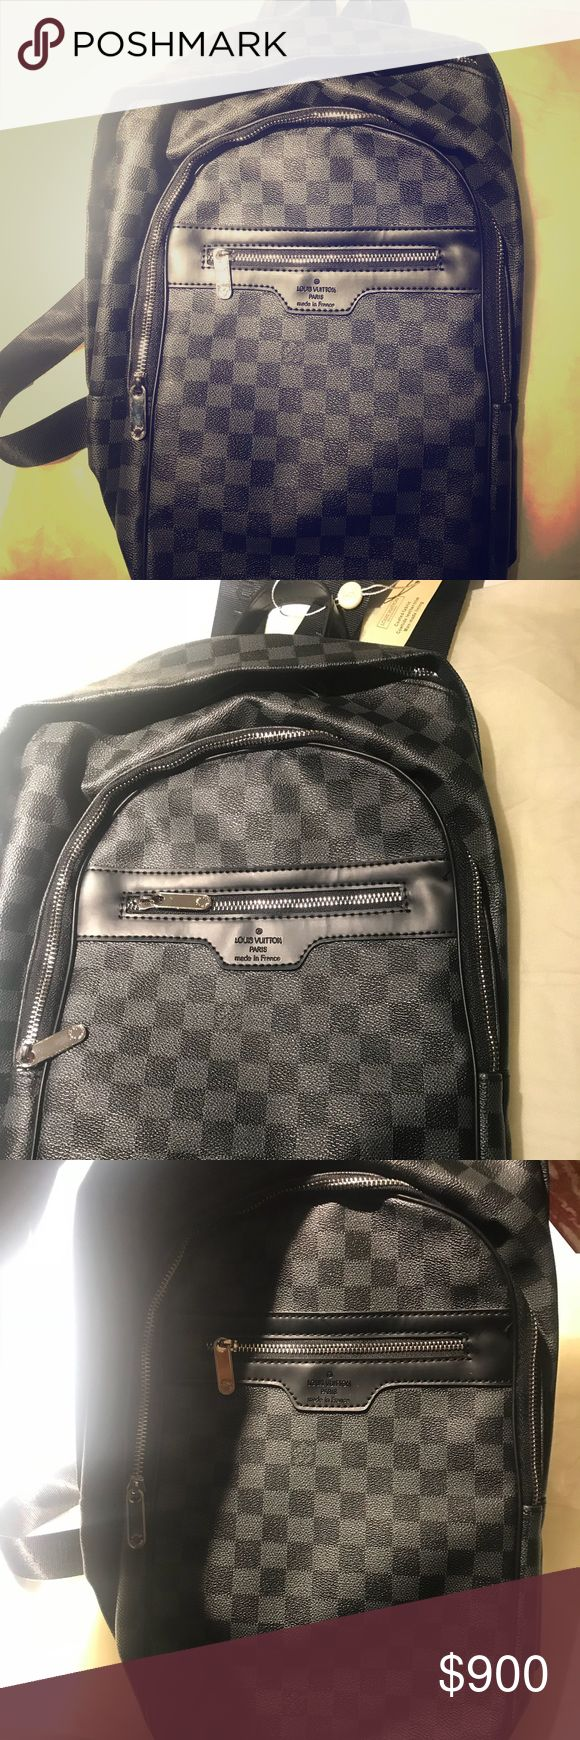 Louis Vuitton Graphite Damier backpack Small Louis Vuitton men's graphite backpack Louis Vuitton Bags Backpacks